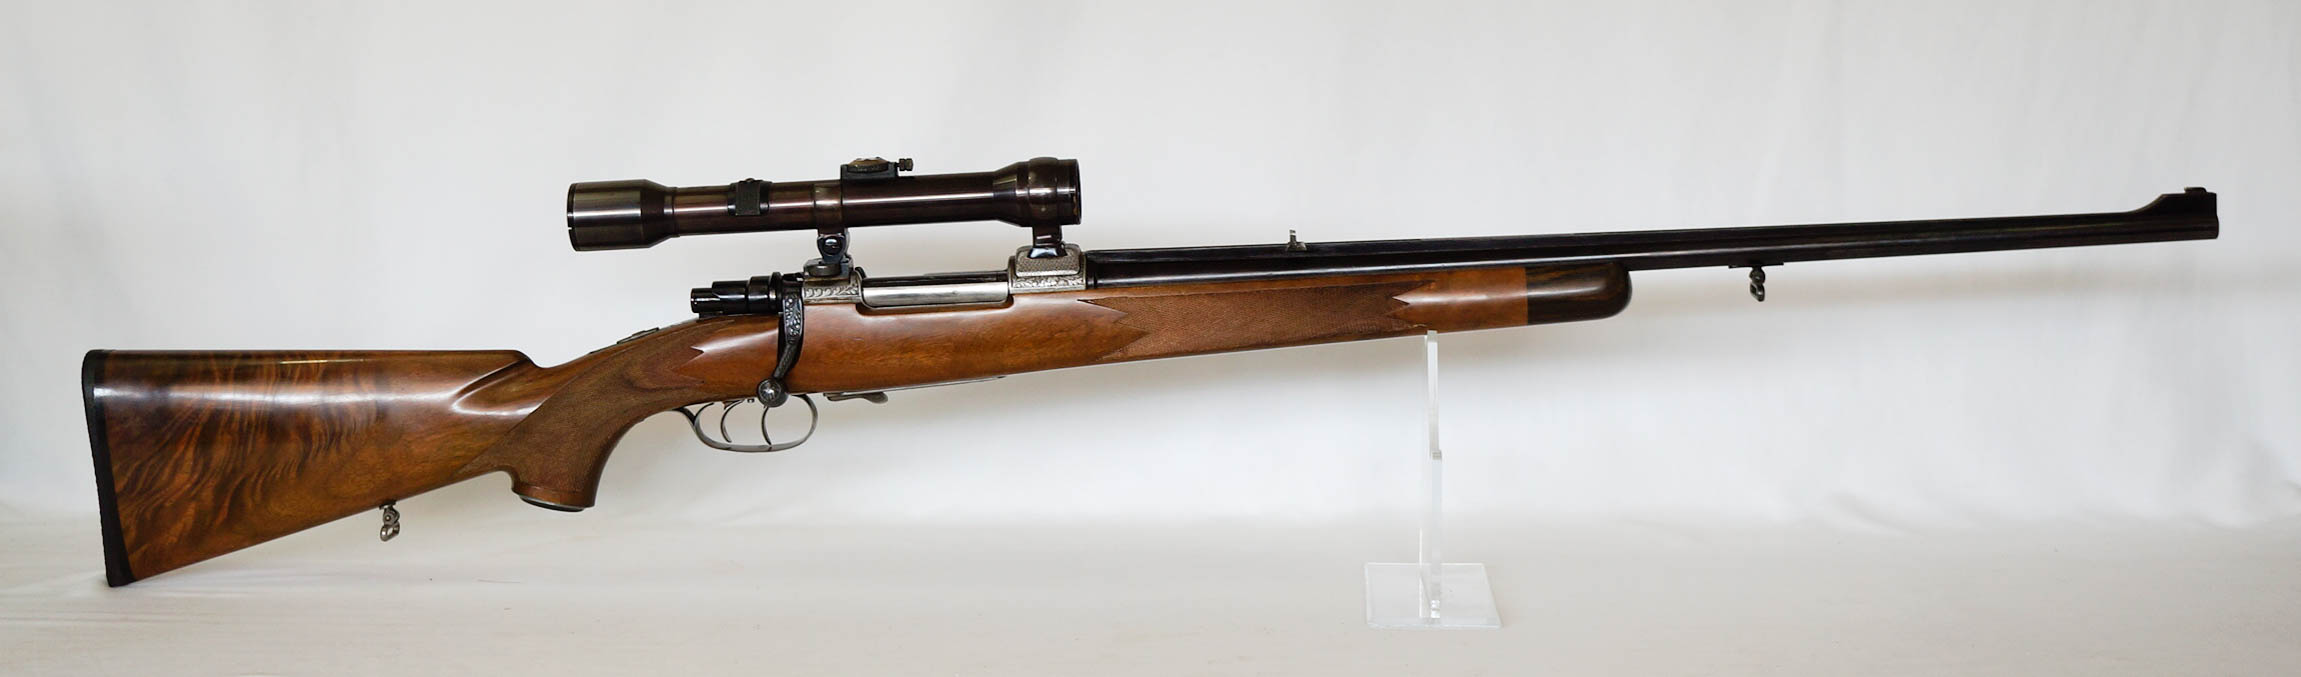 Engraved Dschulnigg Austrian Sporting Rifle